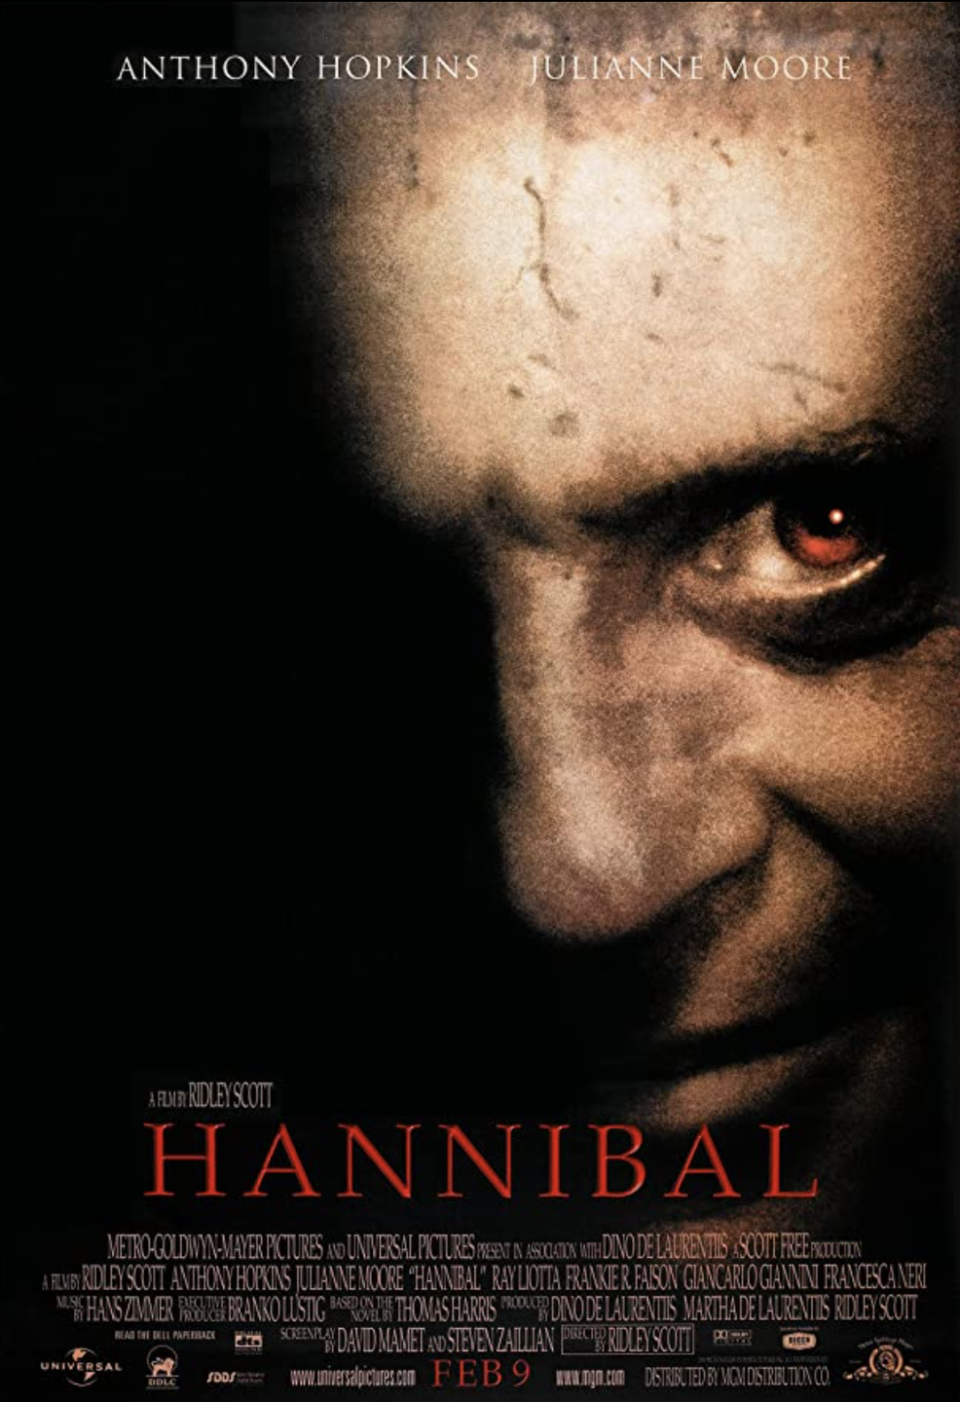 <p>It's not a small feat to follow up the 1991 film <em>Silence of the Lambs</em>, but <em>Hannibal</em> does just that. Released on February 9, 2001, this installment follows Dr. Hannibal Lecter (Anthony Hopkins) who is at large in Europe. Directed by Ridley Scott, Julianne Moore assumed the role of Clarice Starling vacated by Jodie Foster.</p>